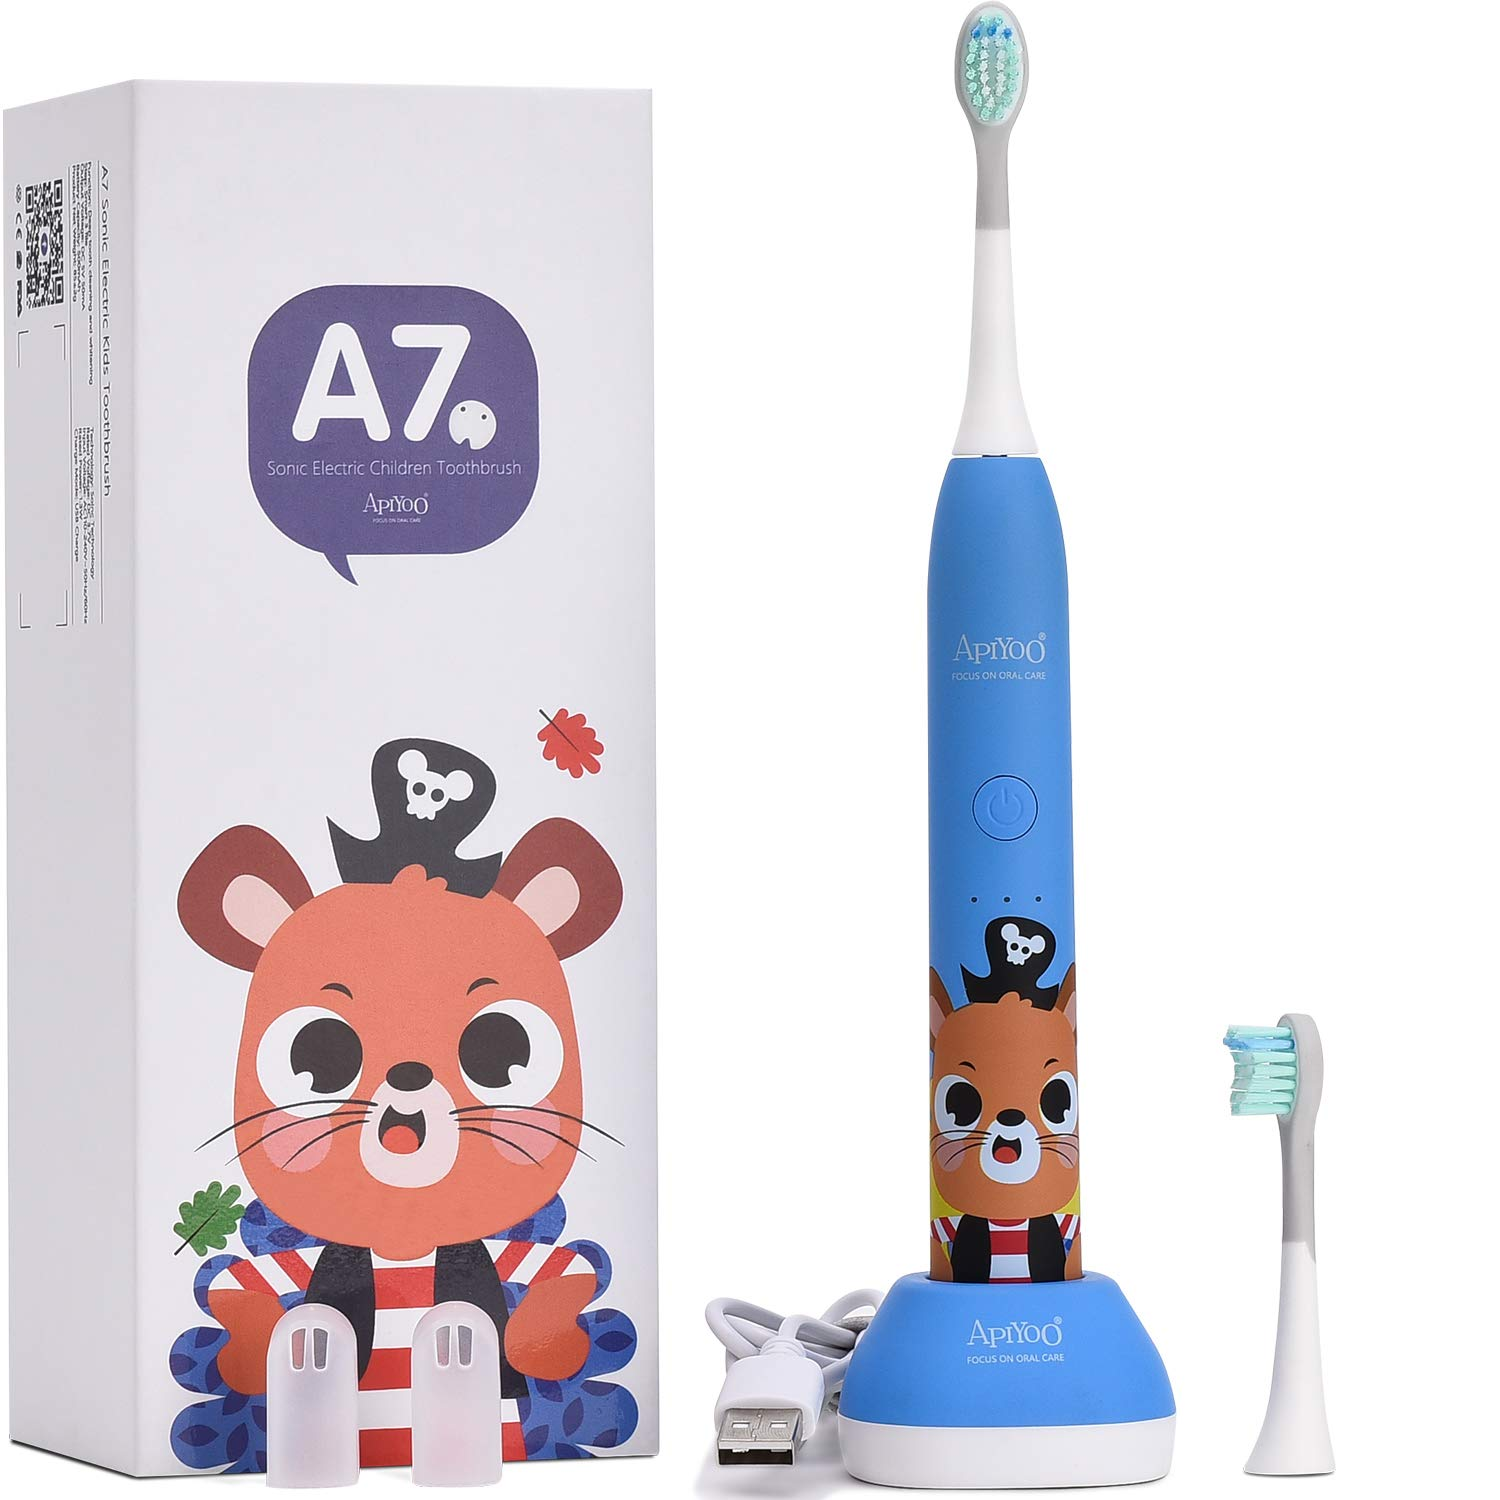 Apiyoo Kids Electric Toothbrush, A7 Wireless Rechargeable Sonic Electric Toothbrushs, IPX7 Waterproof with 3 Brushing Modes, 2 Min Smart Timer for Kids. (Blue)